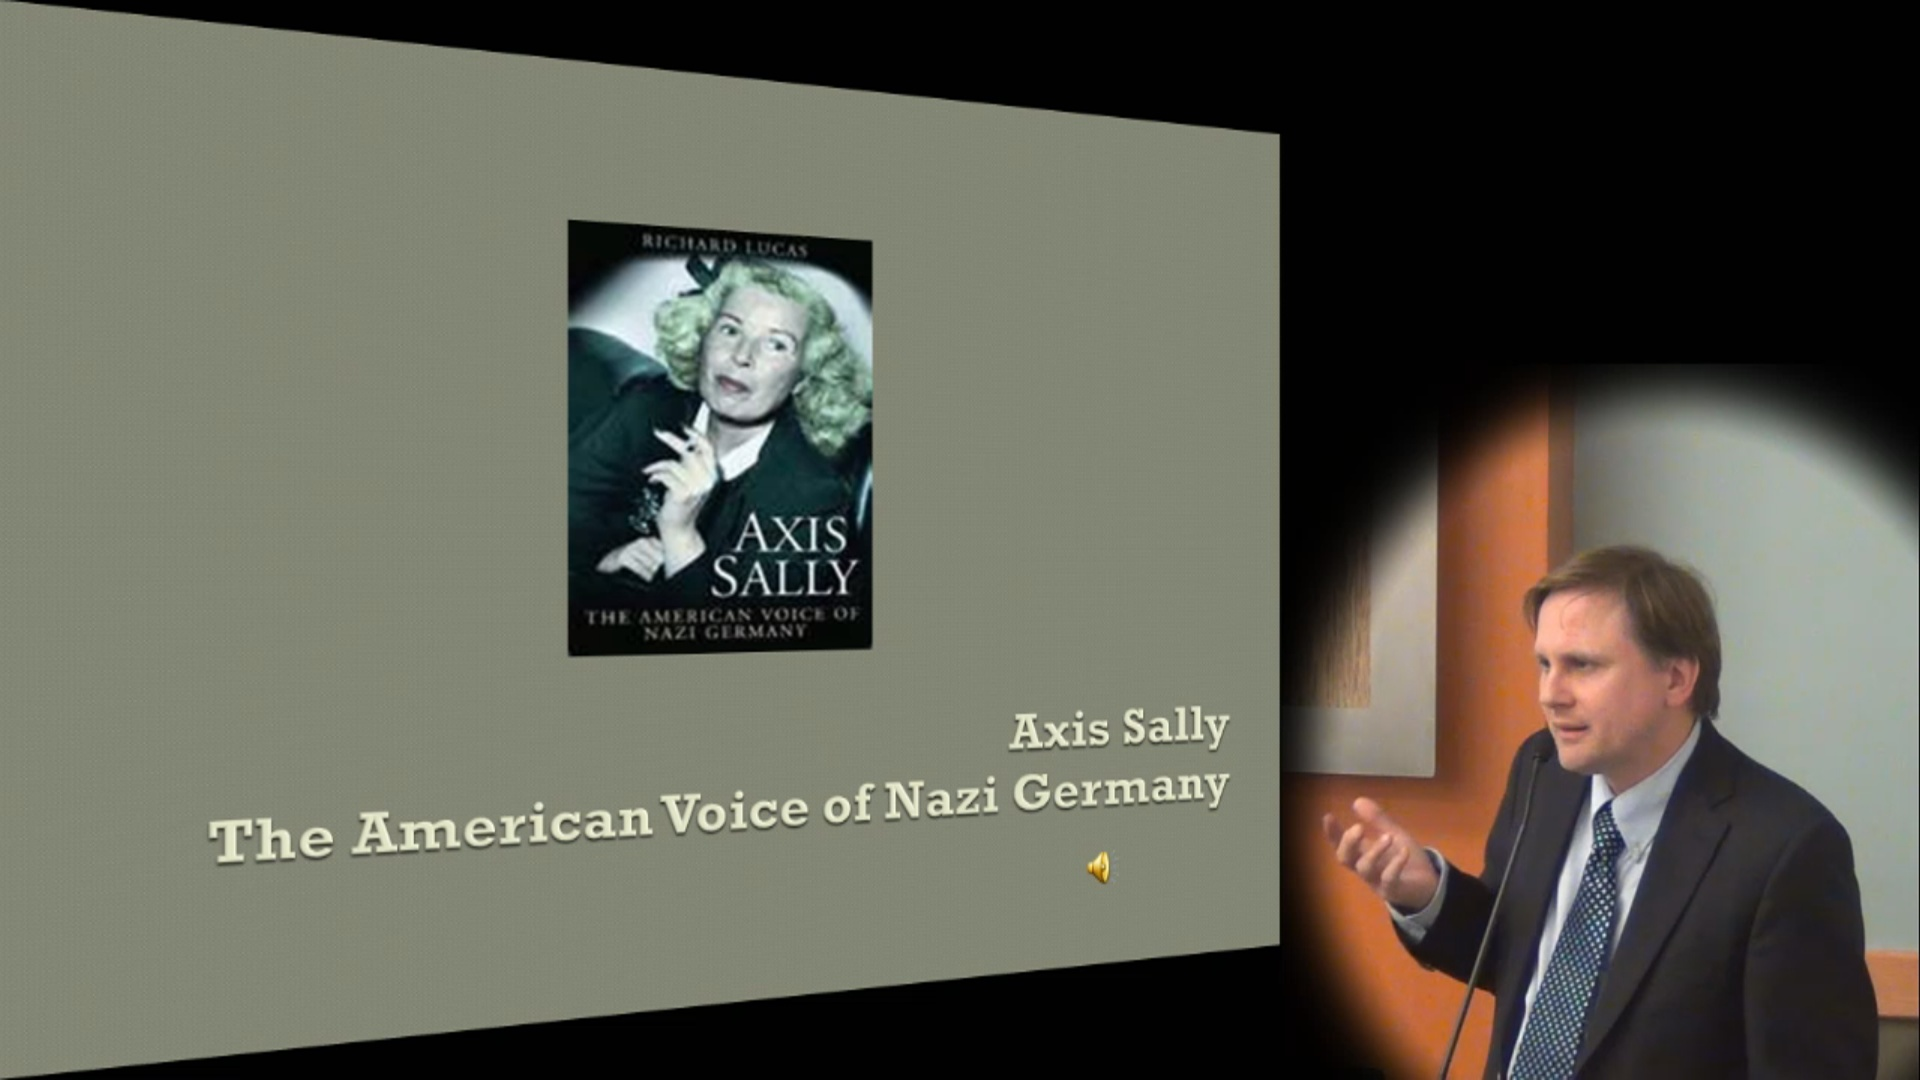 Center for World War II Studies: Axis Sally, The American Voice of Nazi Germany